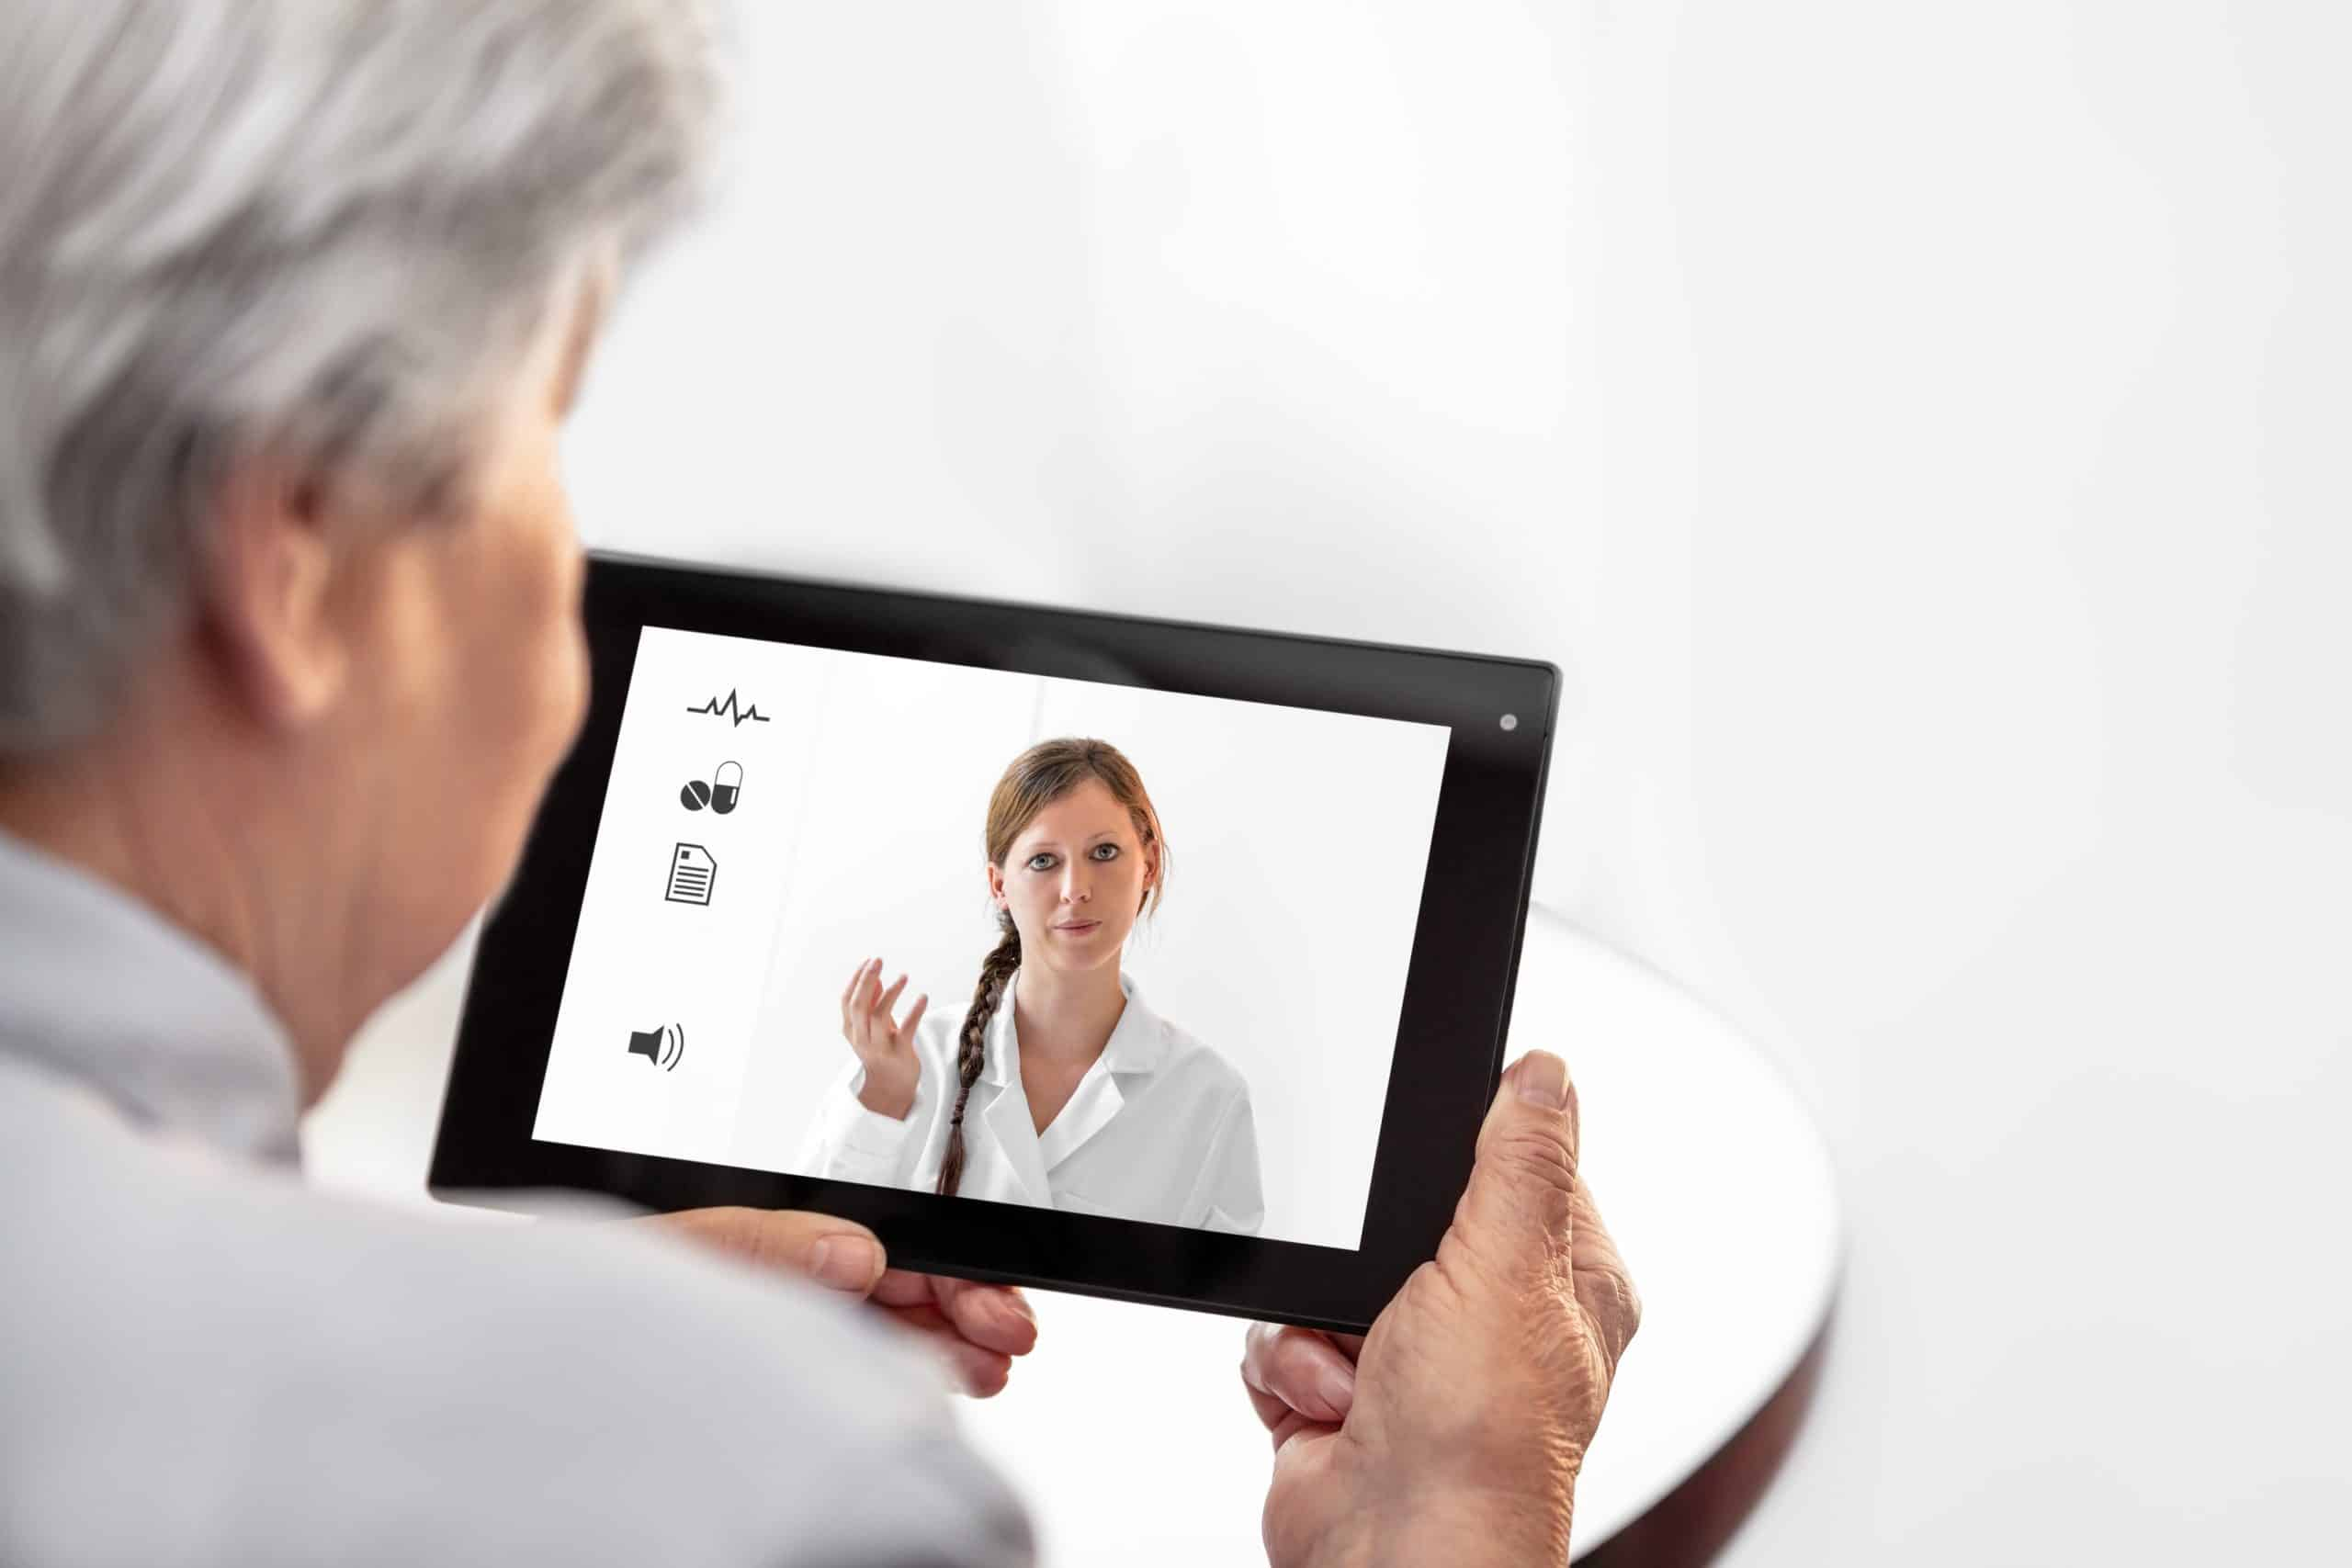 New Study Shows Telehealth Saves $1,500 Per Visit